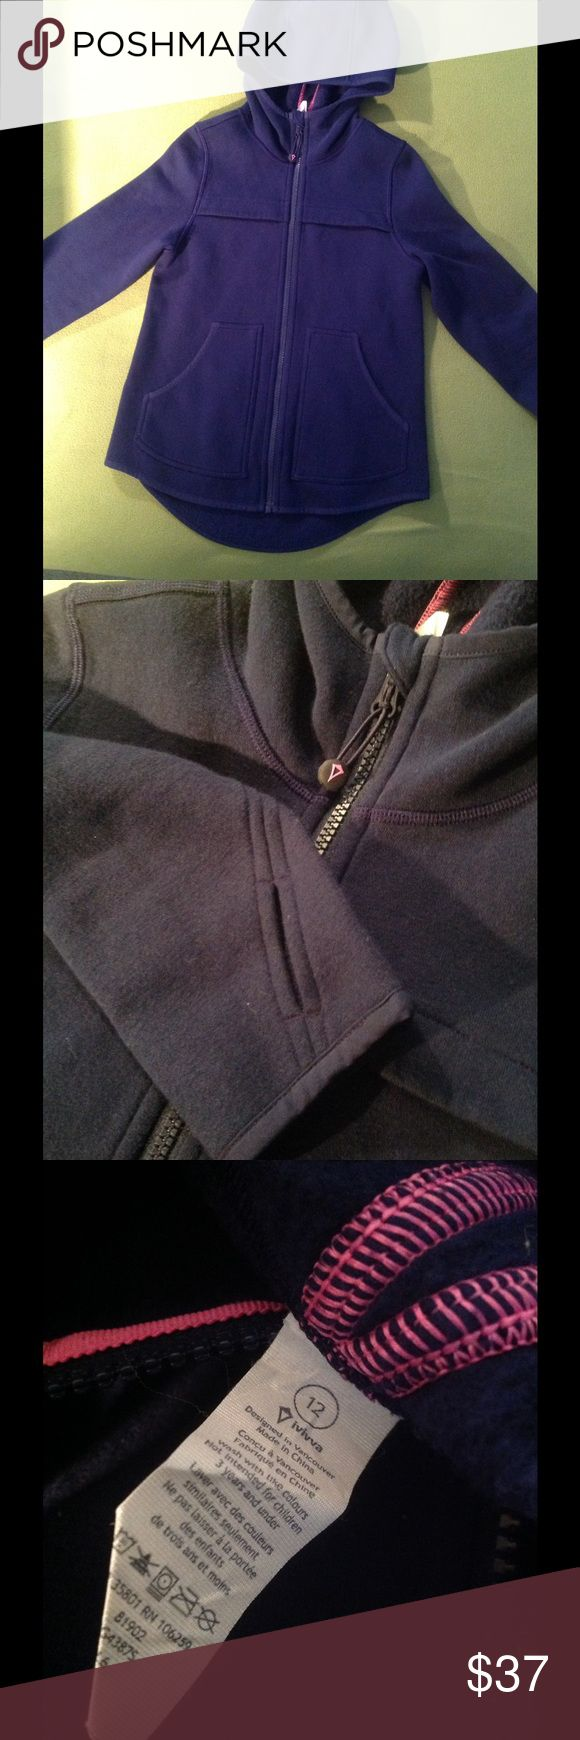 NEW IVIVVA JACKET - lululemon kids 12/2 New ivivva ( kids brand of Lululemon ) jacket! Never worn or washed, I bought this and it was too small for me. Kids 12 but is equivalent to a size 2 Lululemon. Ivivva symbol on back and zipper. Zipper can be removed and used as a hair tie! Thought this was cool 😎. Also, there are thumb holes ( great for cold weather ). This is a great jacket for winter or even ice skating! No pilling, stains or rips. Very cozy!!!  Let me know if you have any…